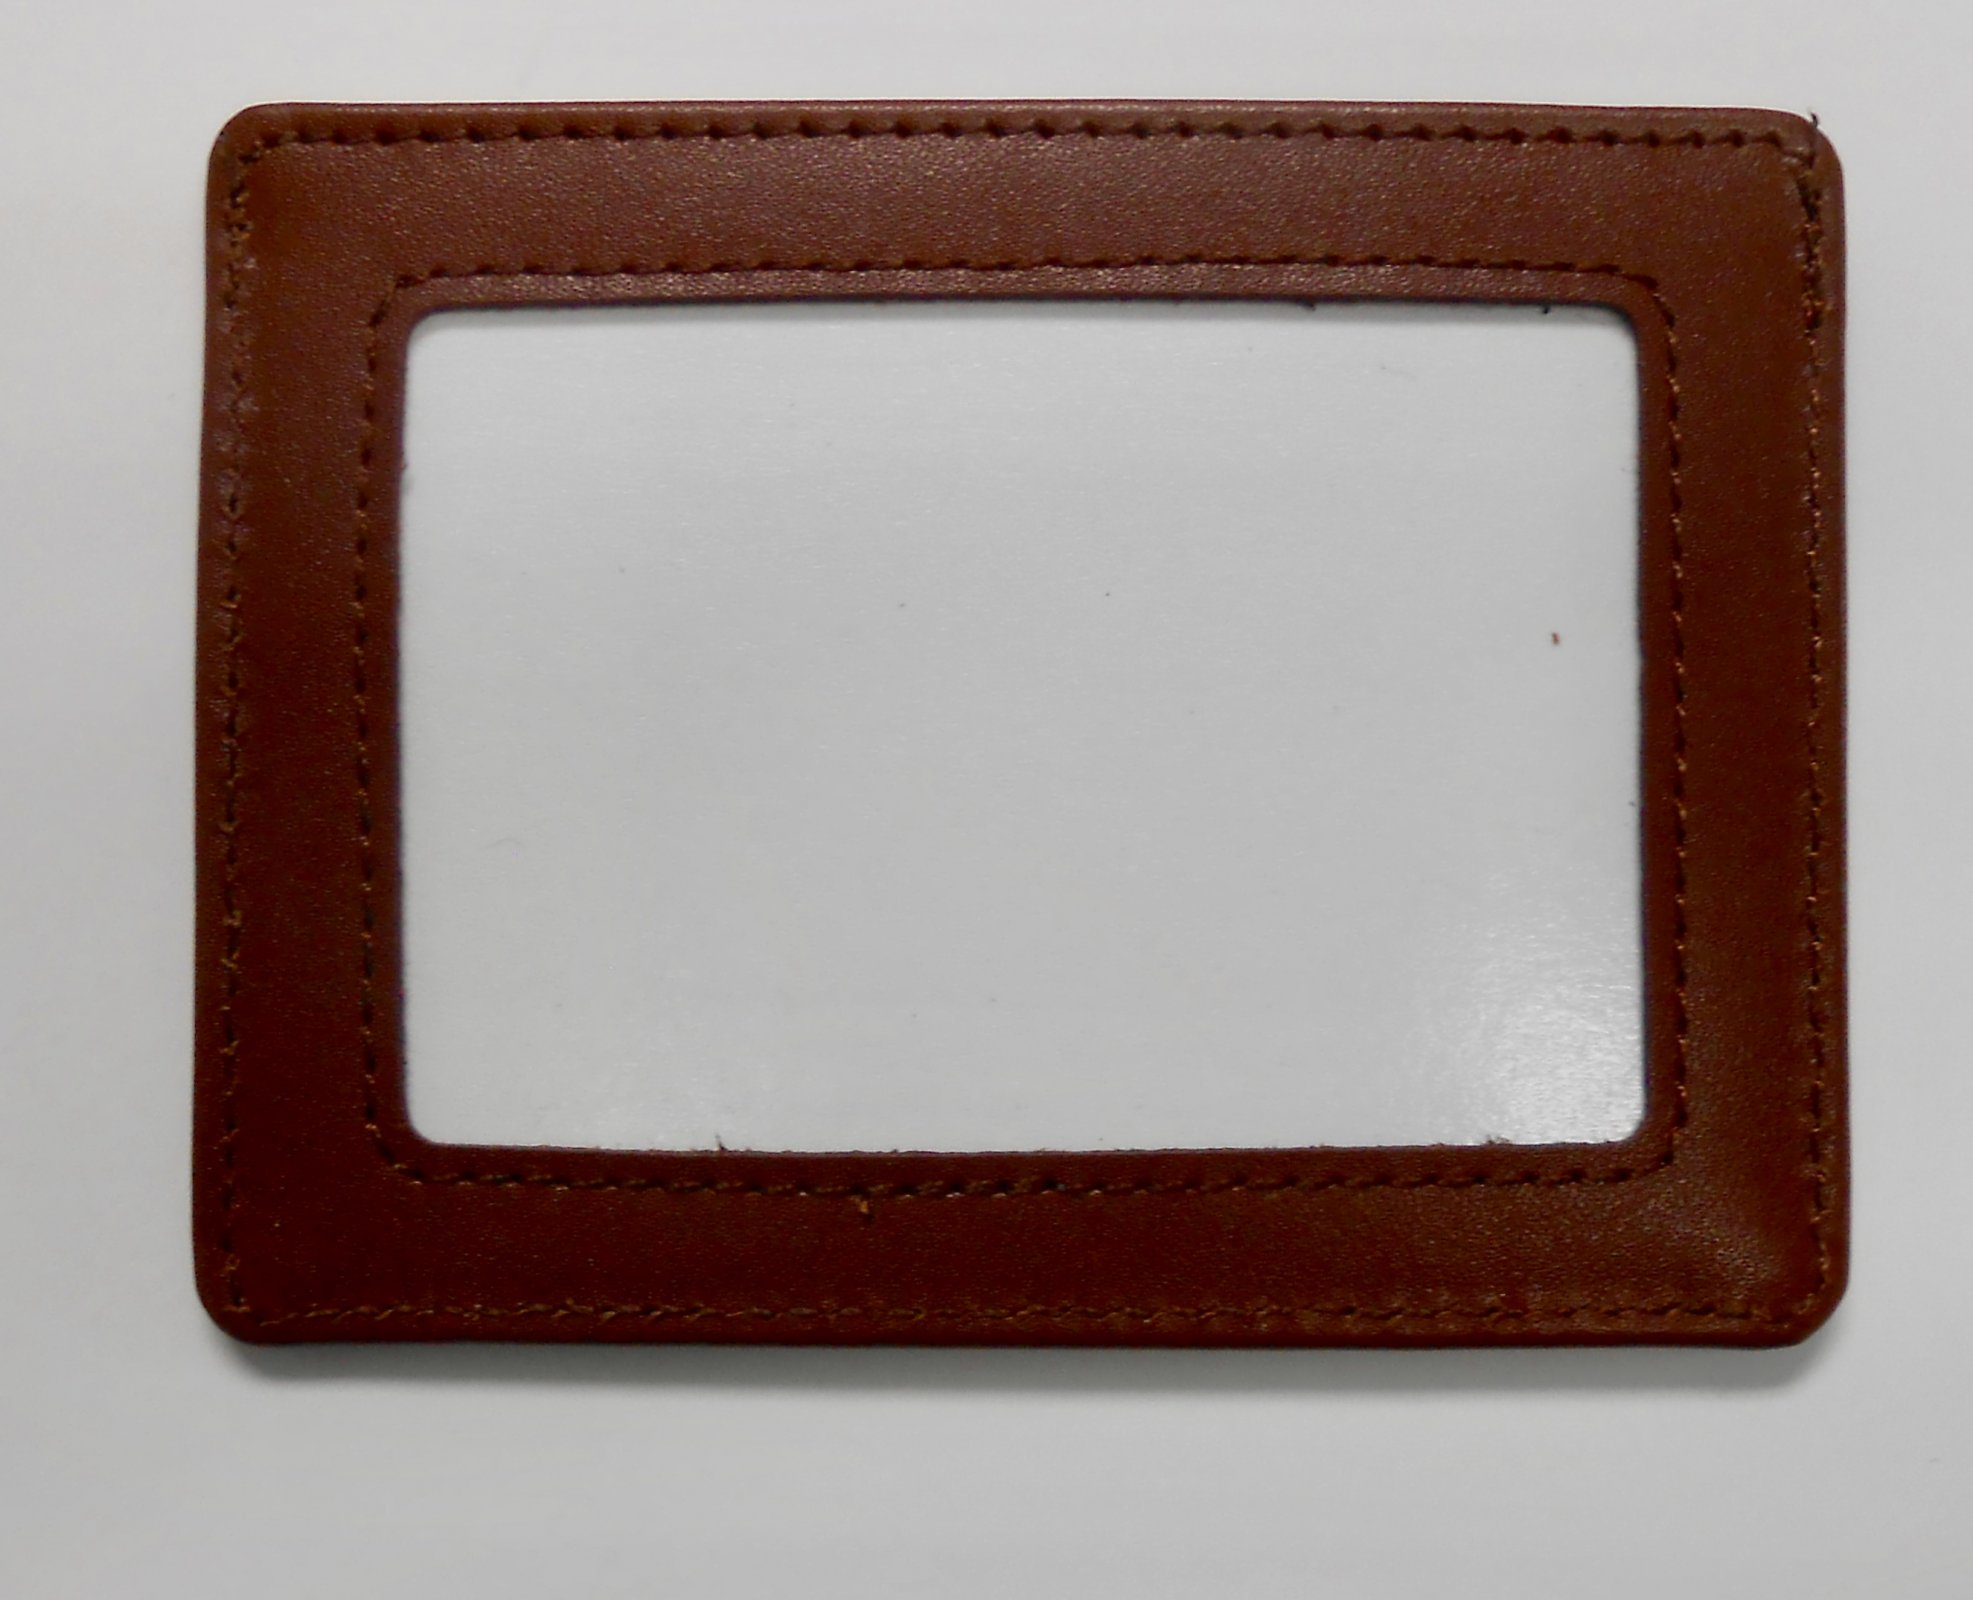 Credit Card Holder - Brown